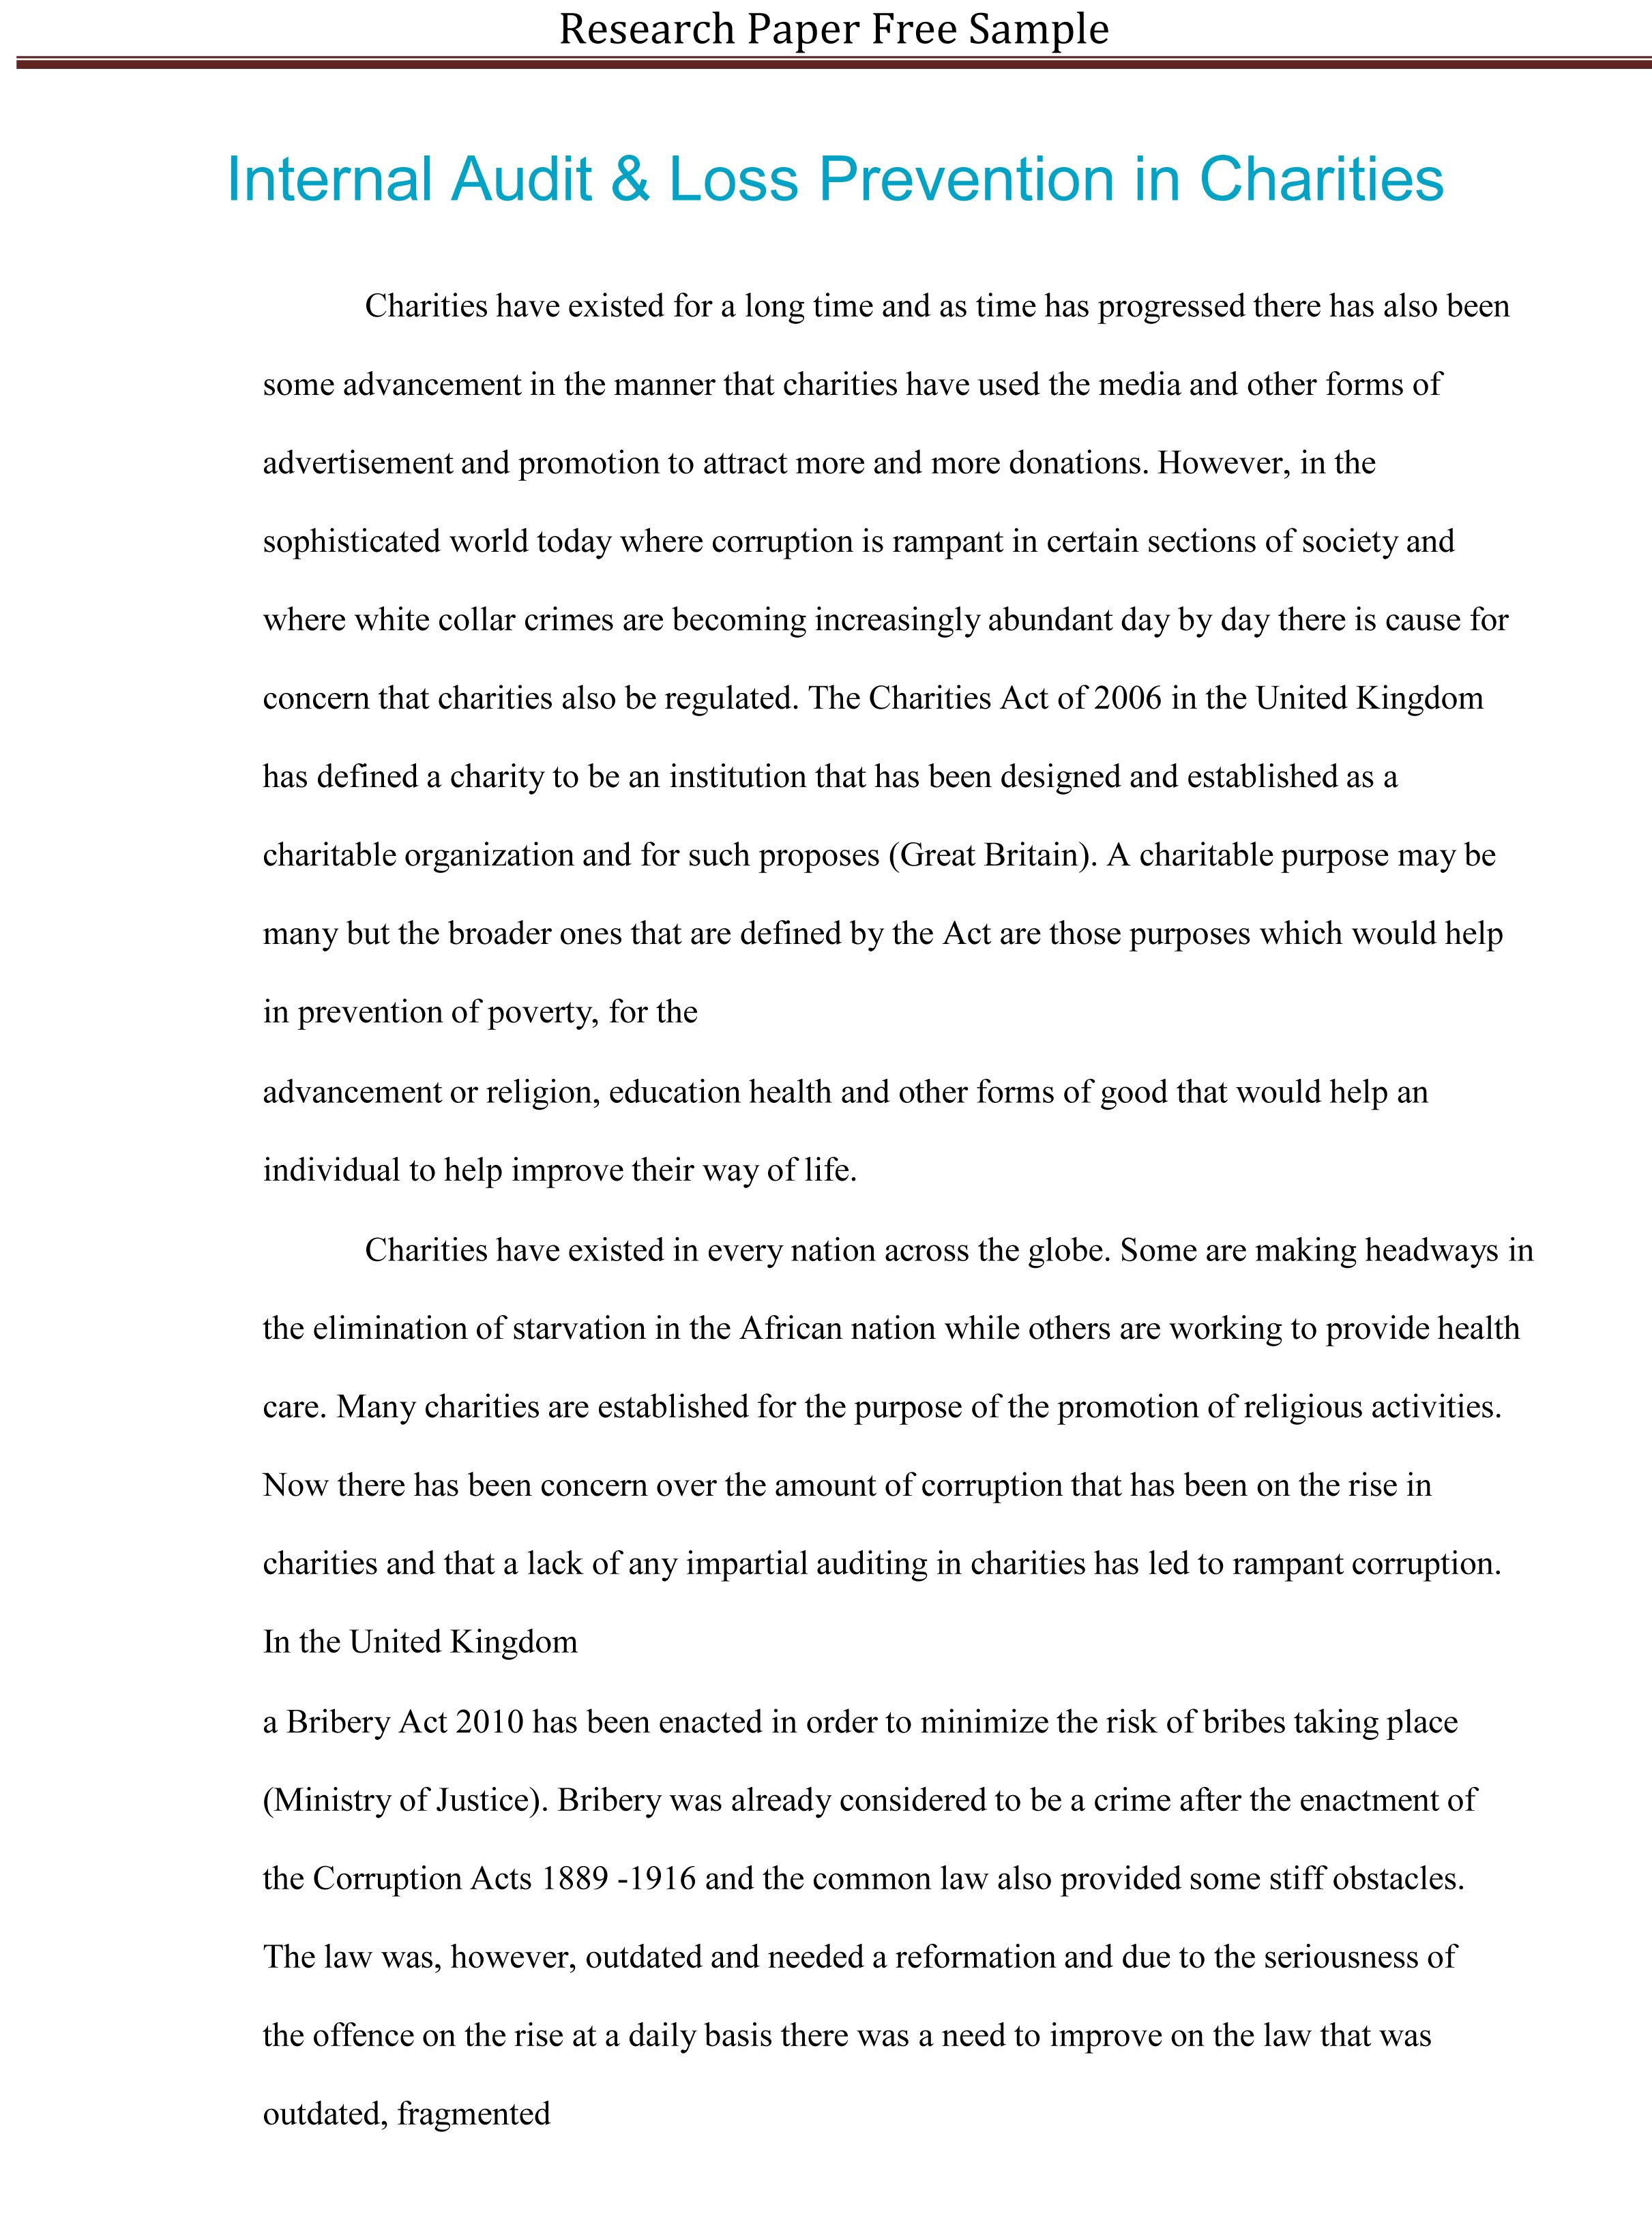 014 Ideas To Write Research Paper On Dreaded A Good Full